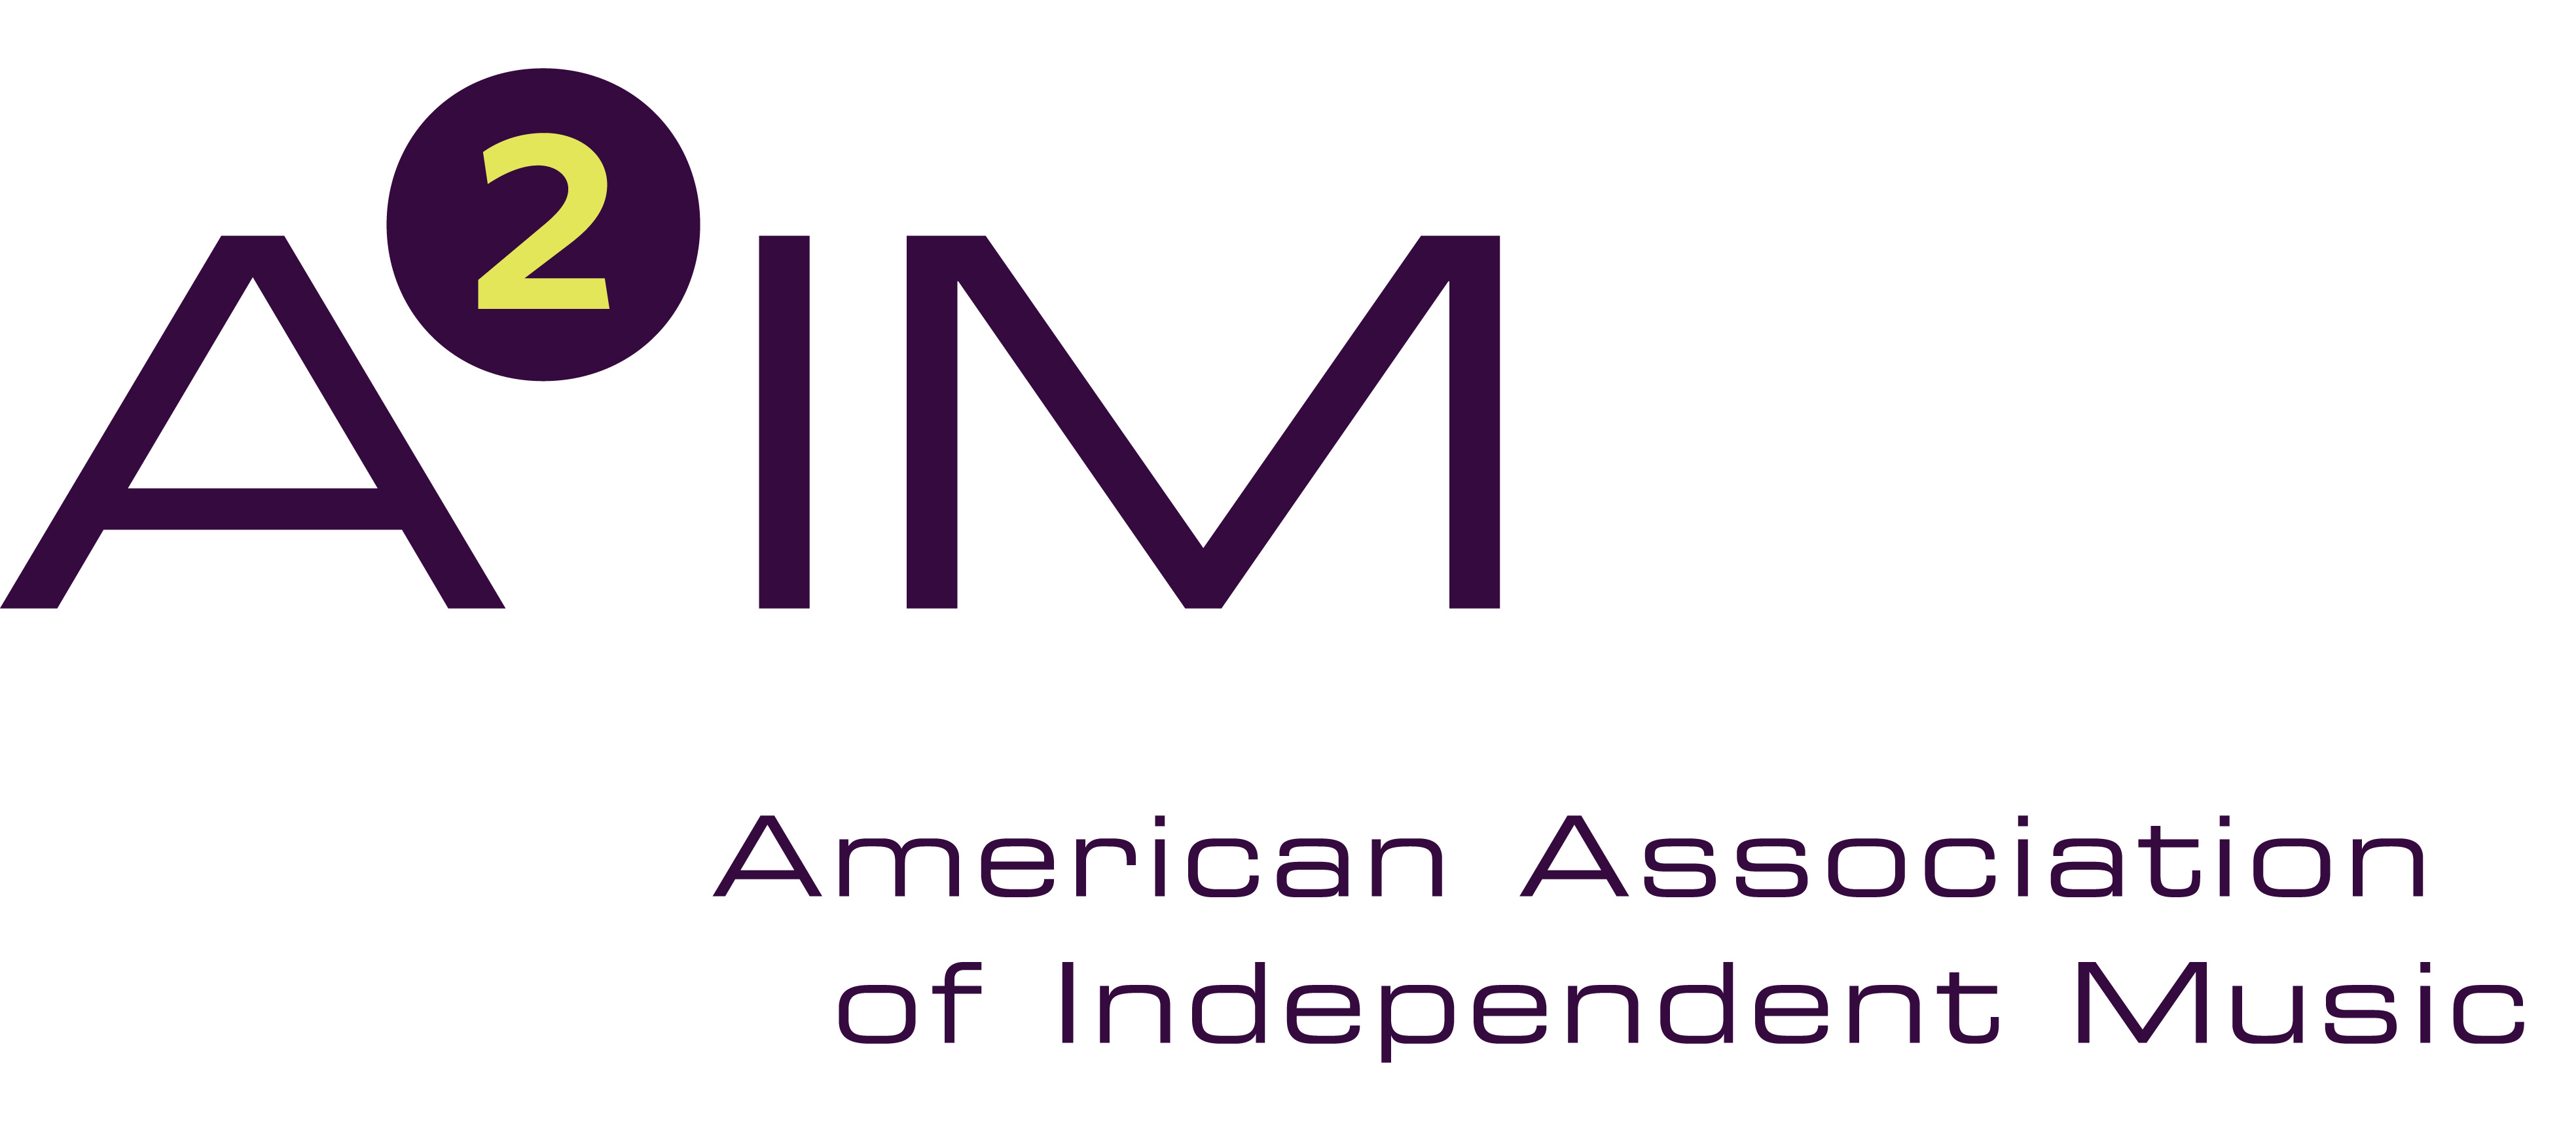 A2IM Libera Awards announces Lineup: Mac DeMarco, Naughty By Nature, Nosaj Thing, & Torres